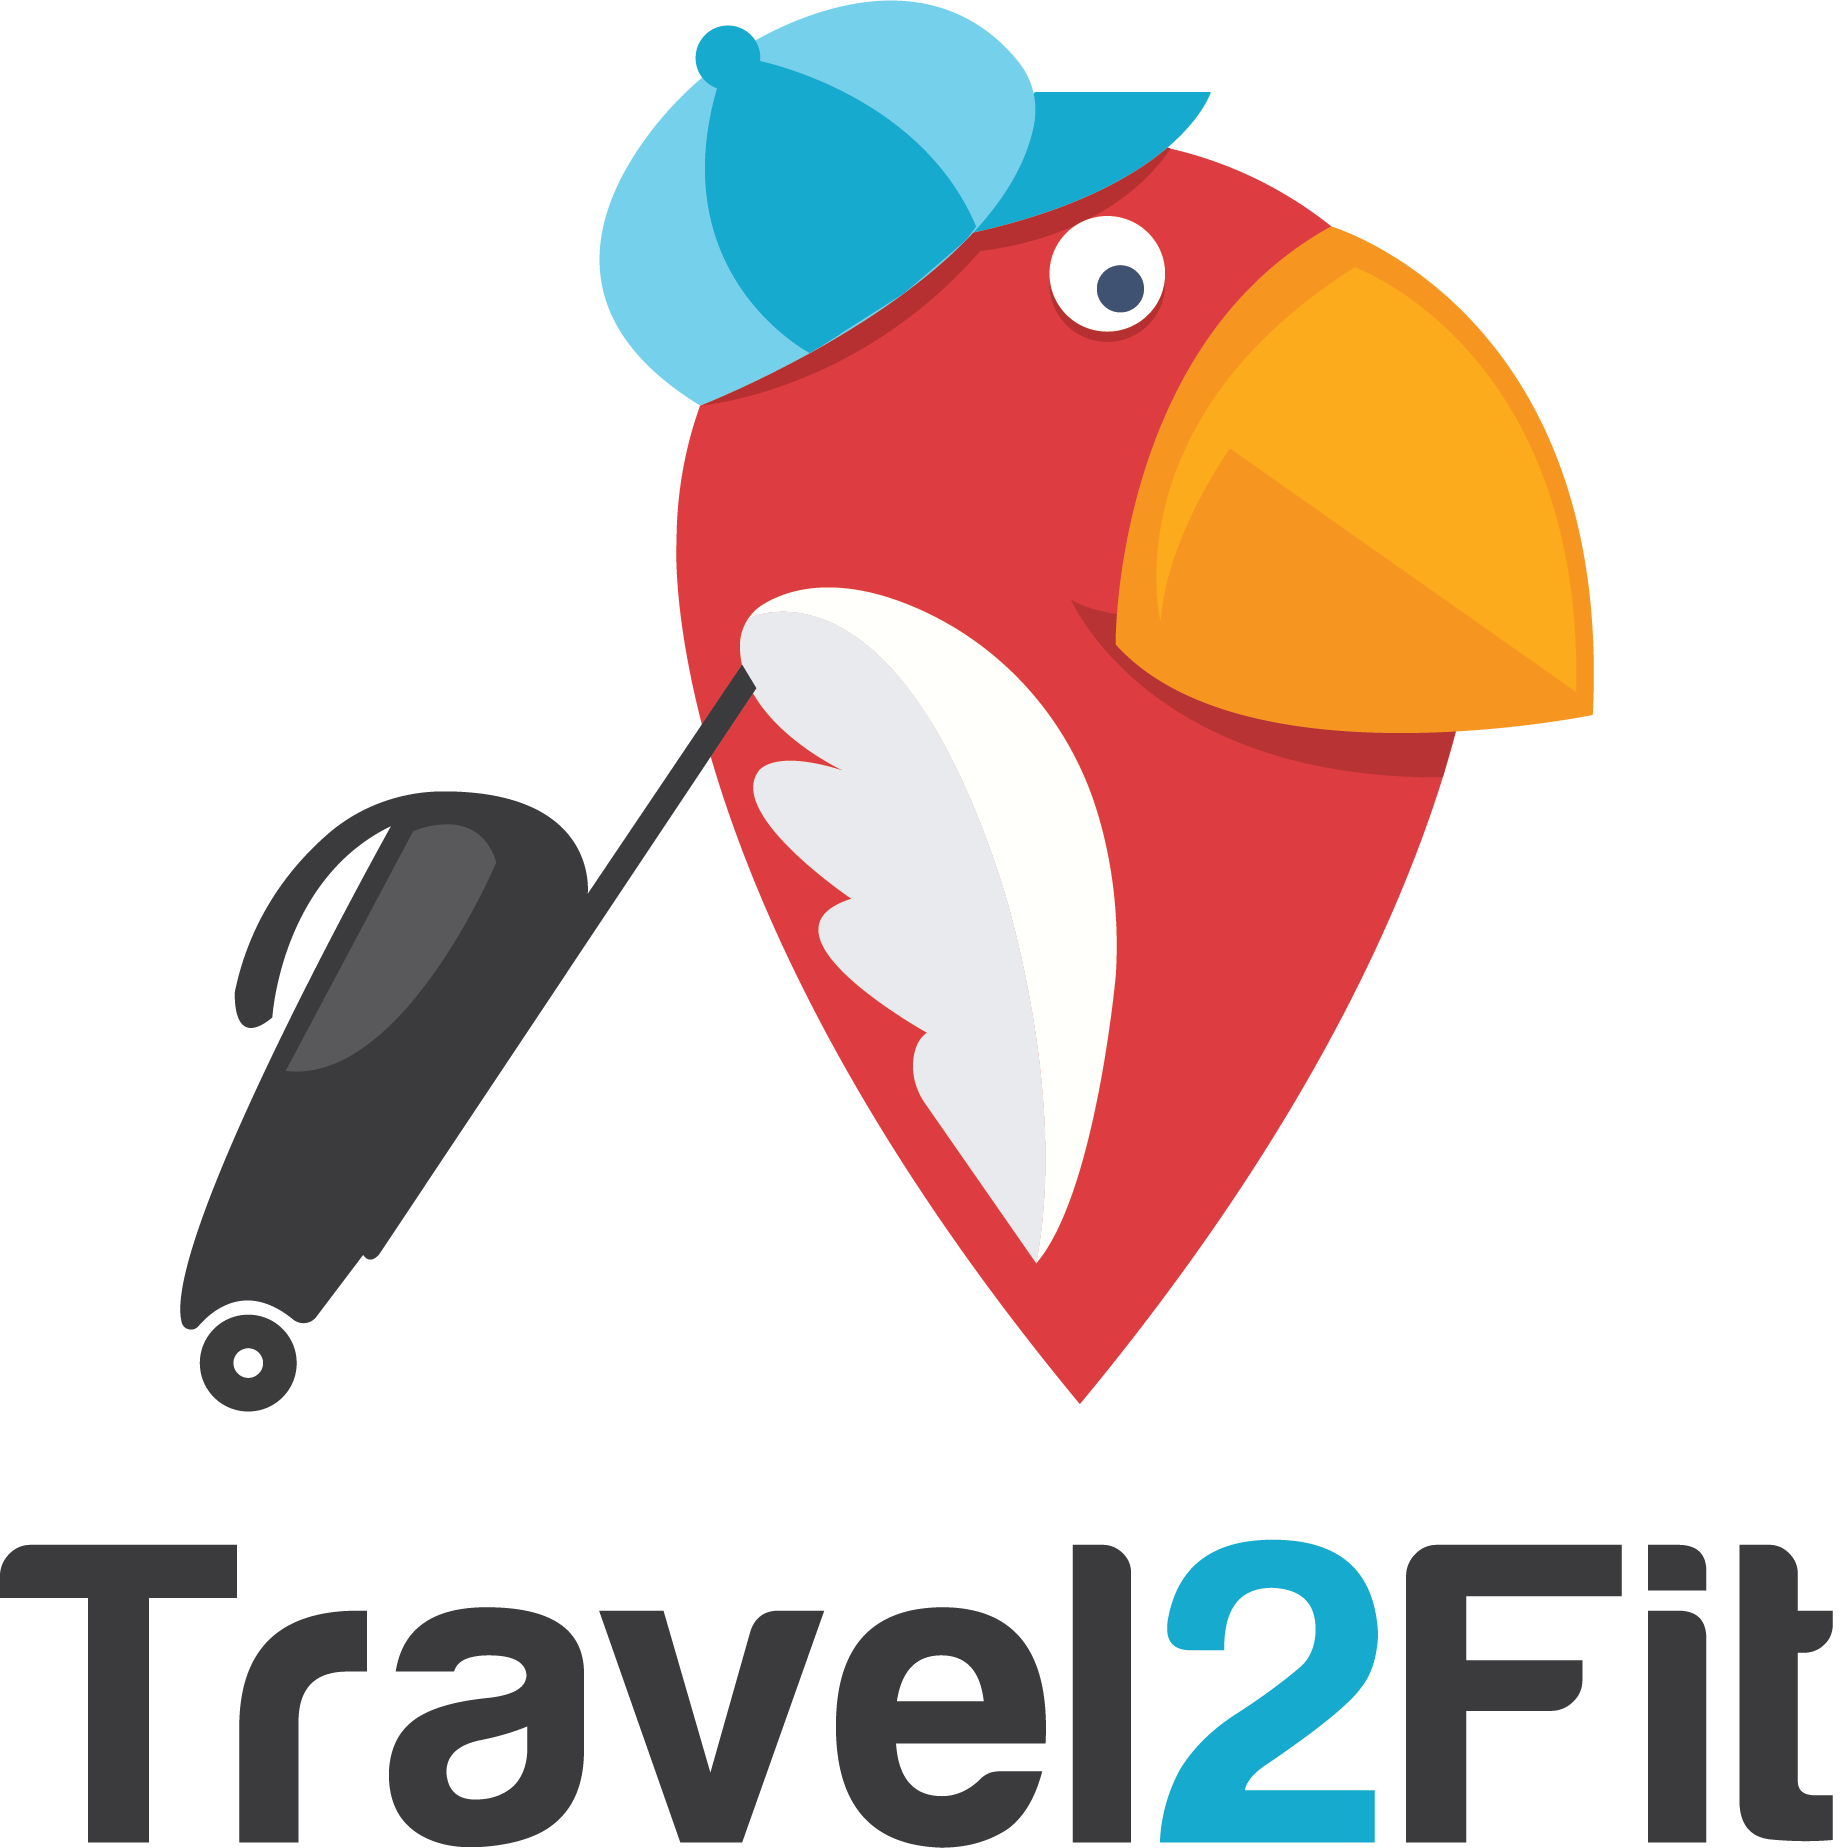 Travel2Fit logo